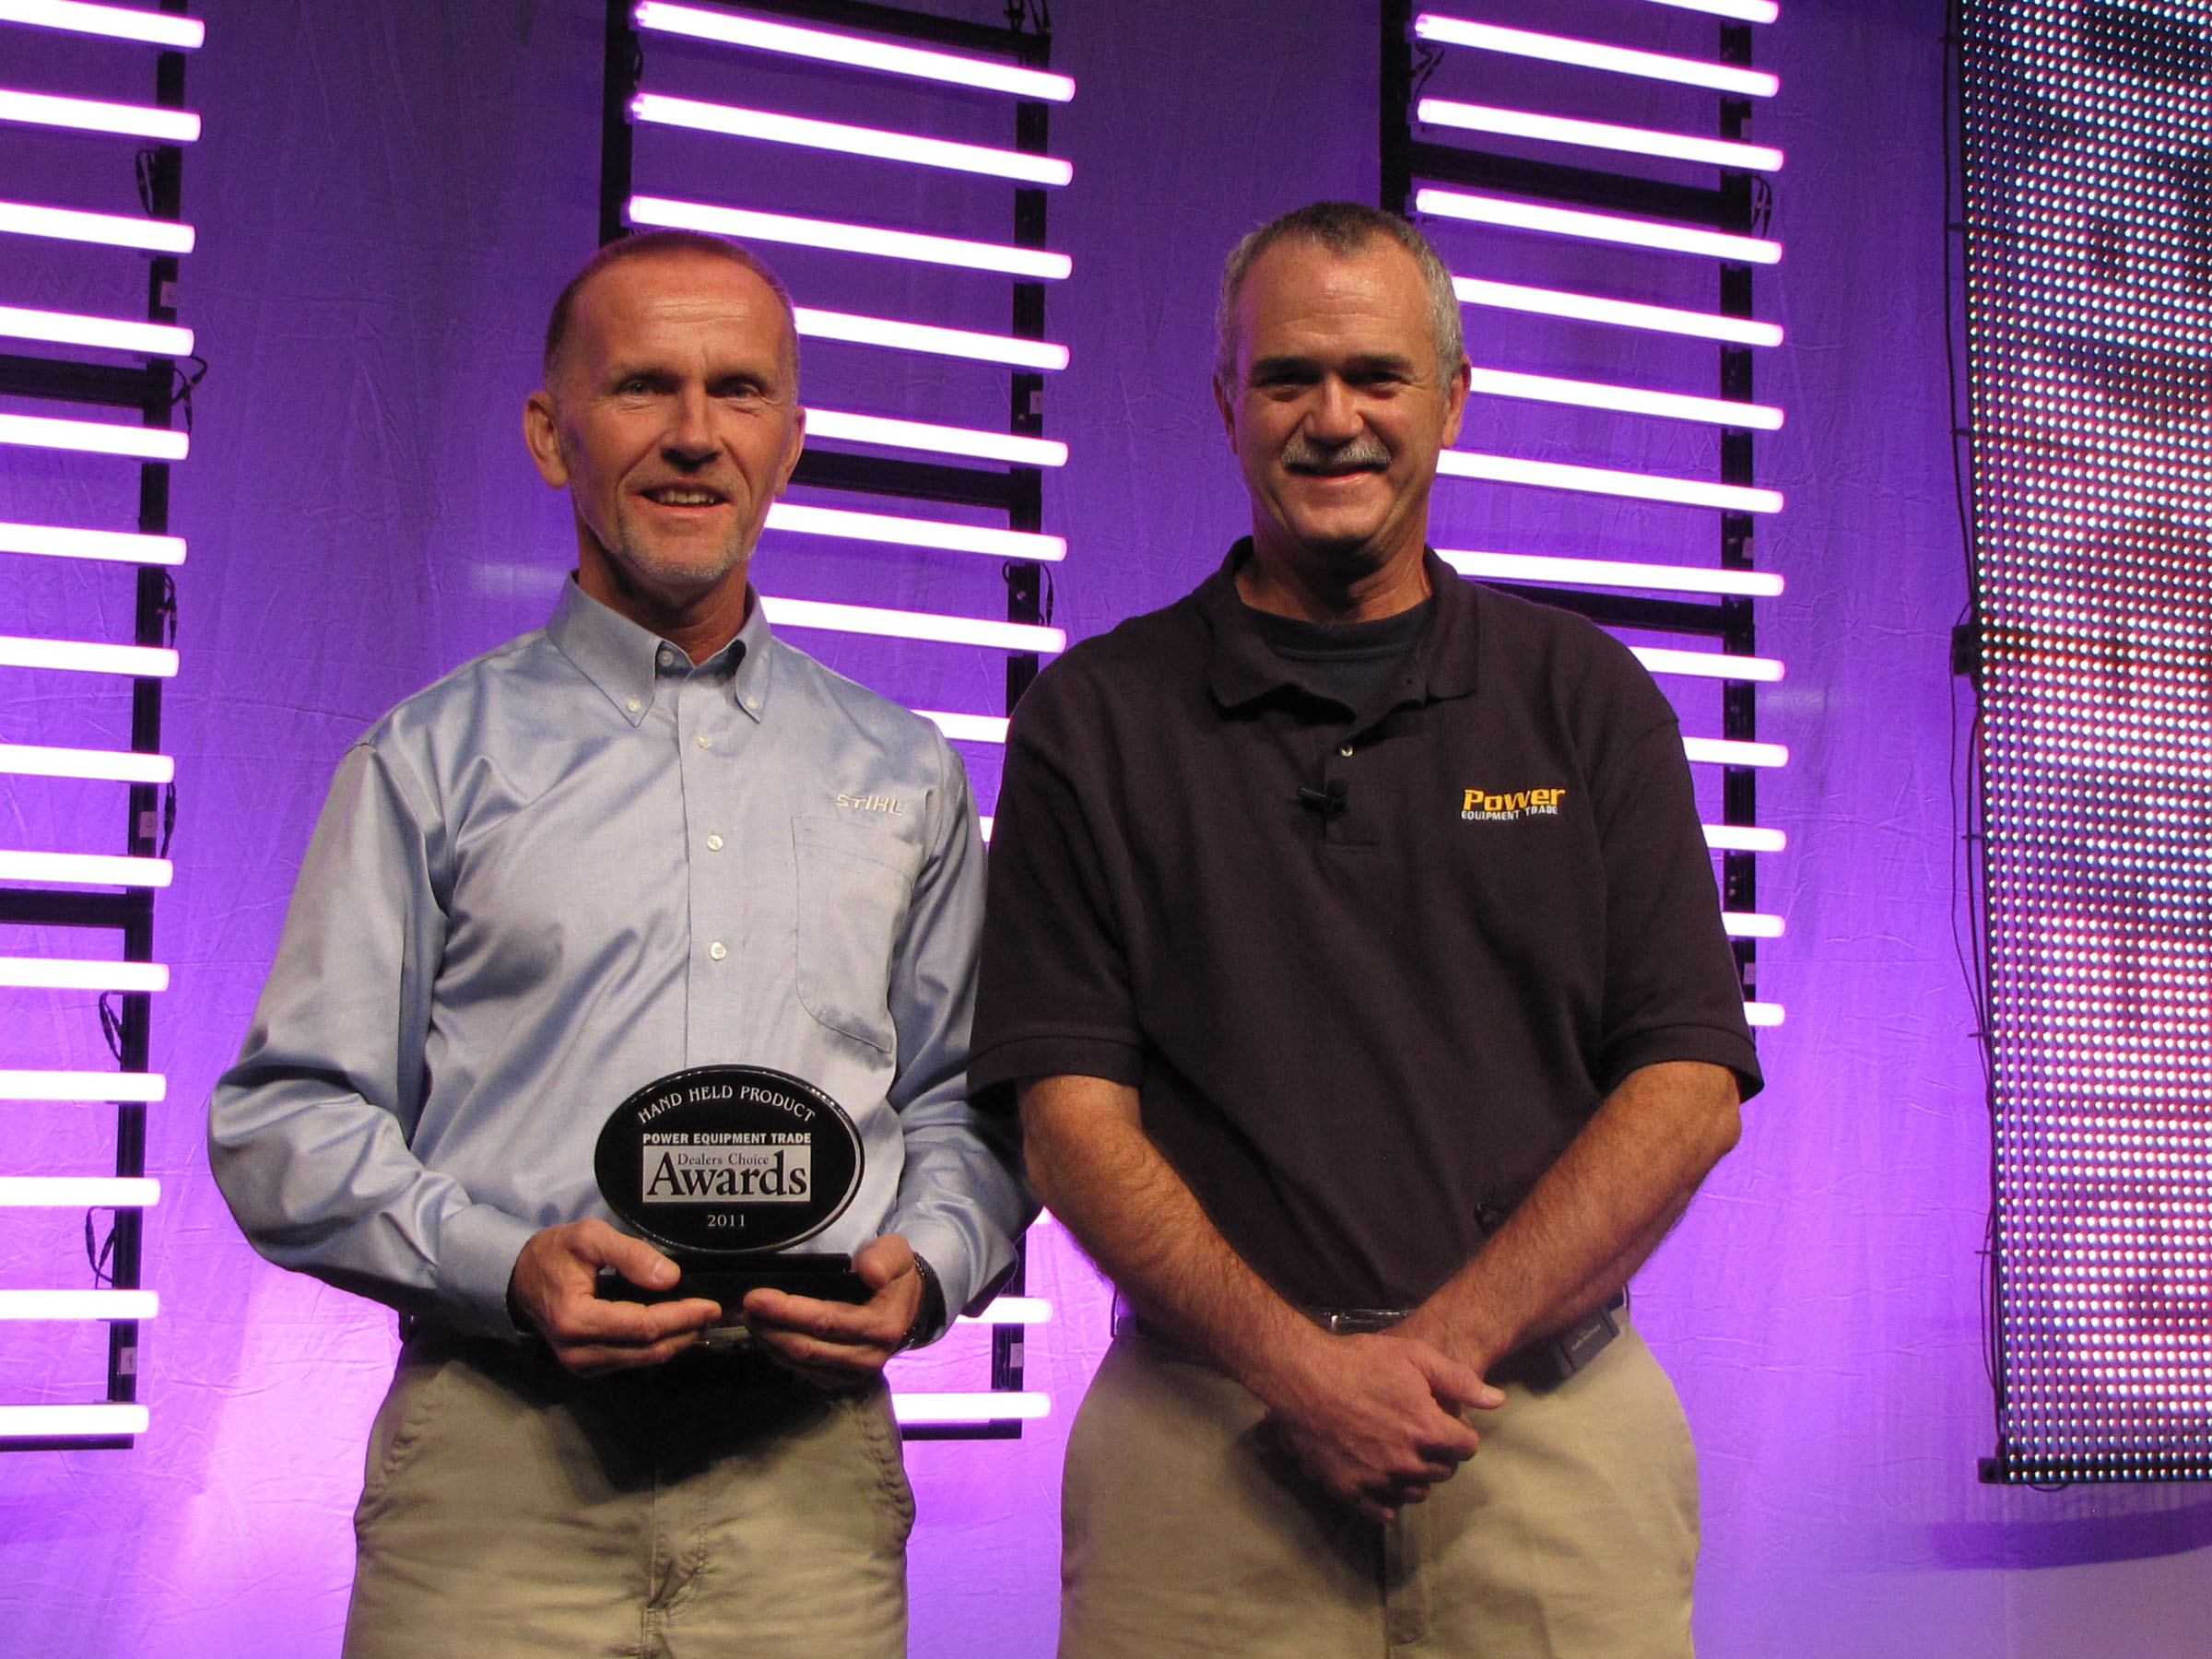 Marv Mathwig, product manager for STIHL Inc. and Dan Shell of Power Equipment Trade